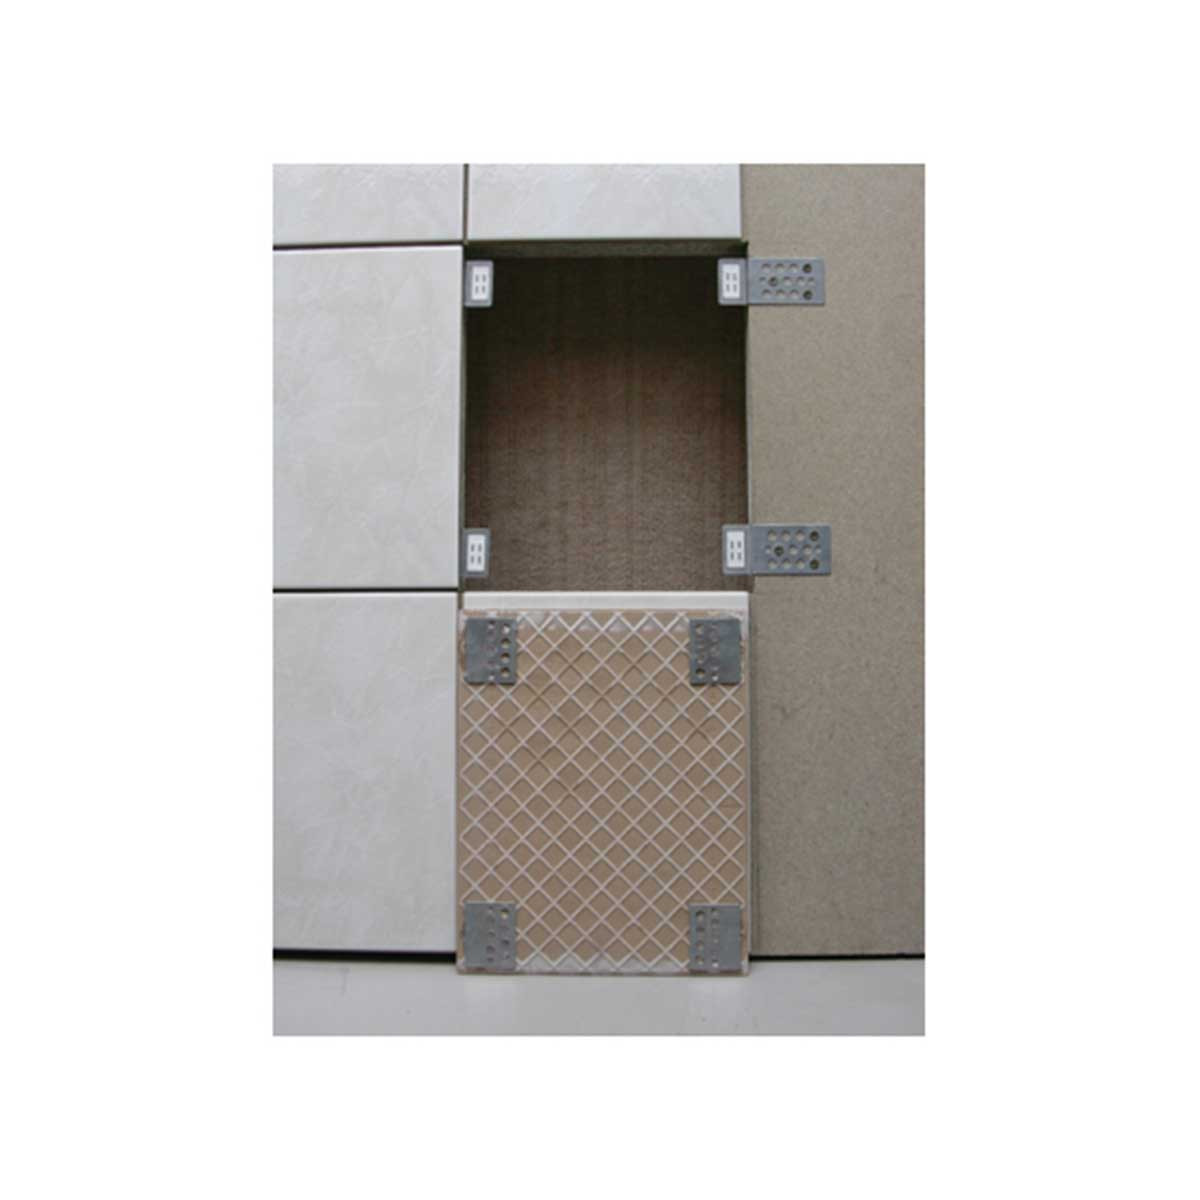 Tomecanic magnetic tile access panel contractors direct for Tiled access panels bathroom